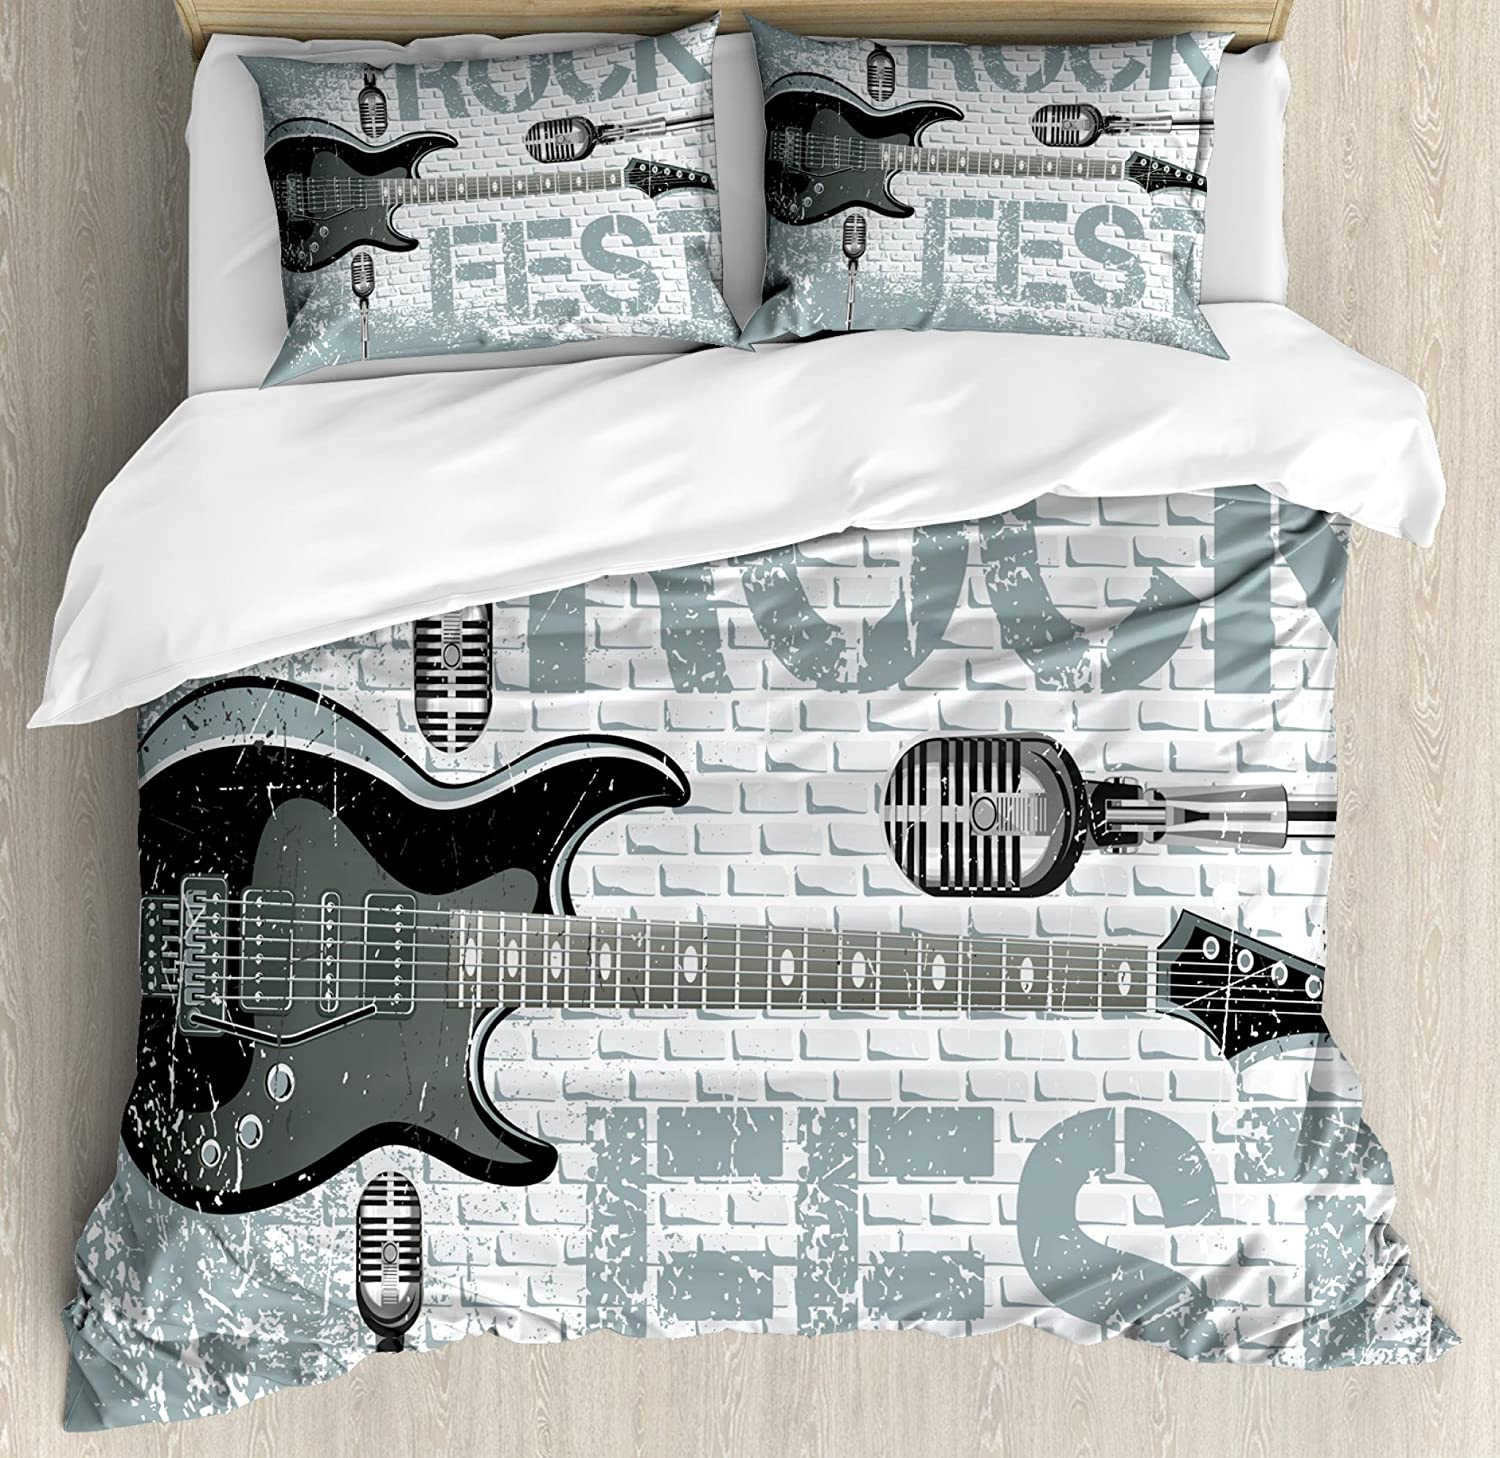 Ambesonne Rock Music Duvet Cover Set, Grunge Color Splashed Brick Wall Background Electronic Guitar Mics Design, Decorative 3 Piece Bedding Set with 2 Pillow Shams, Queen Size, Blue Grey